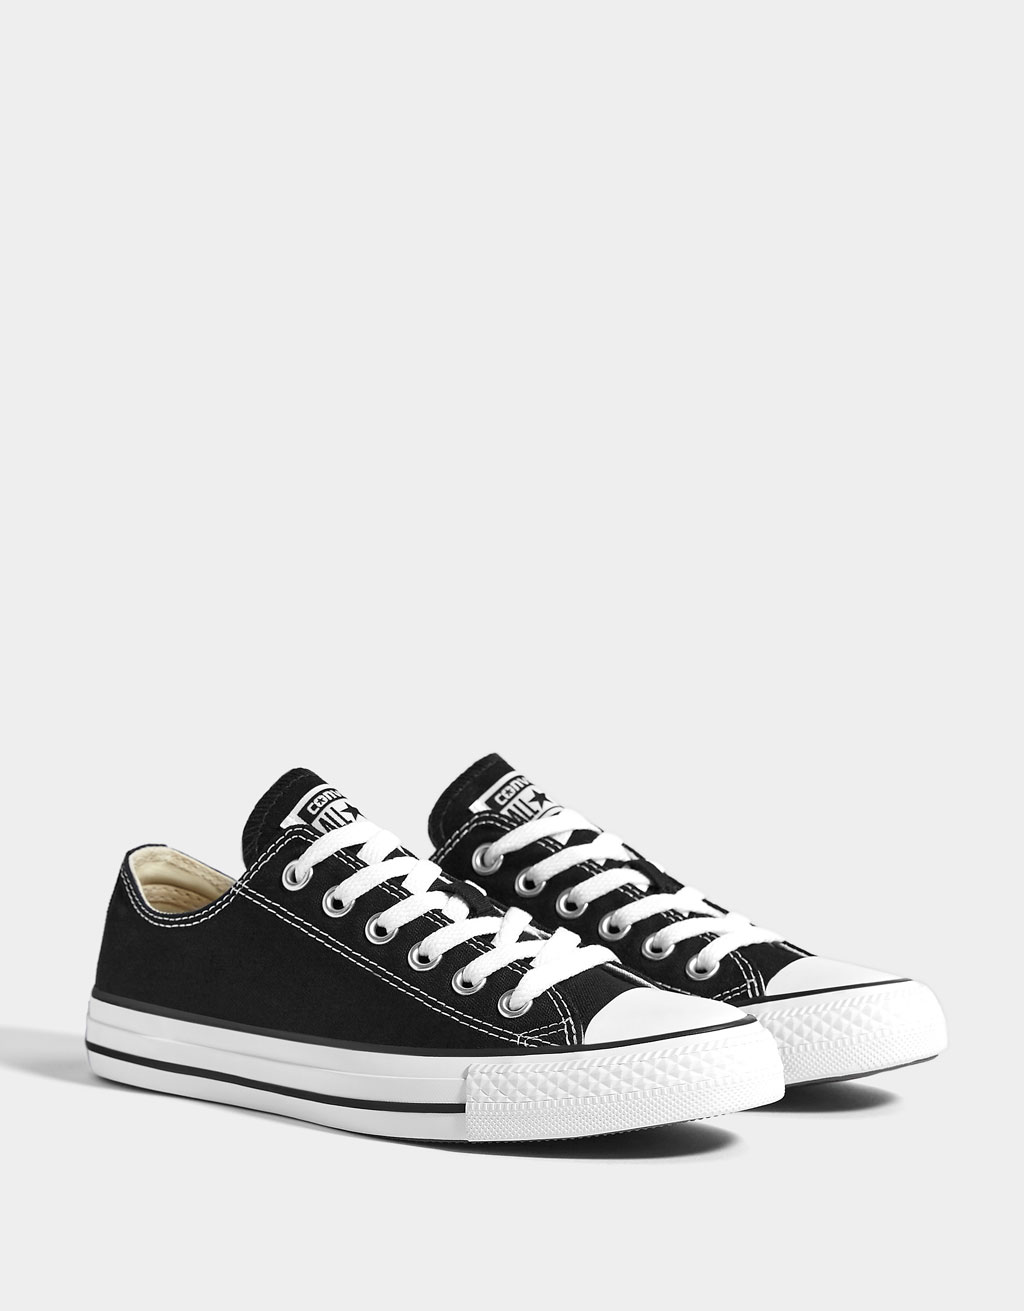 Tennis CONVERSE ALL STAR homme